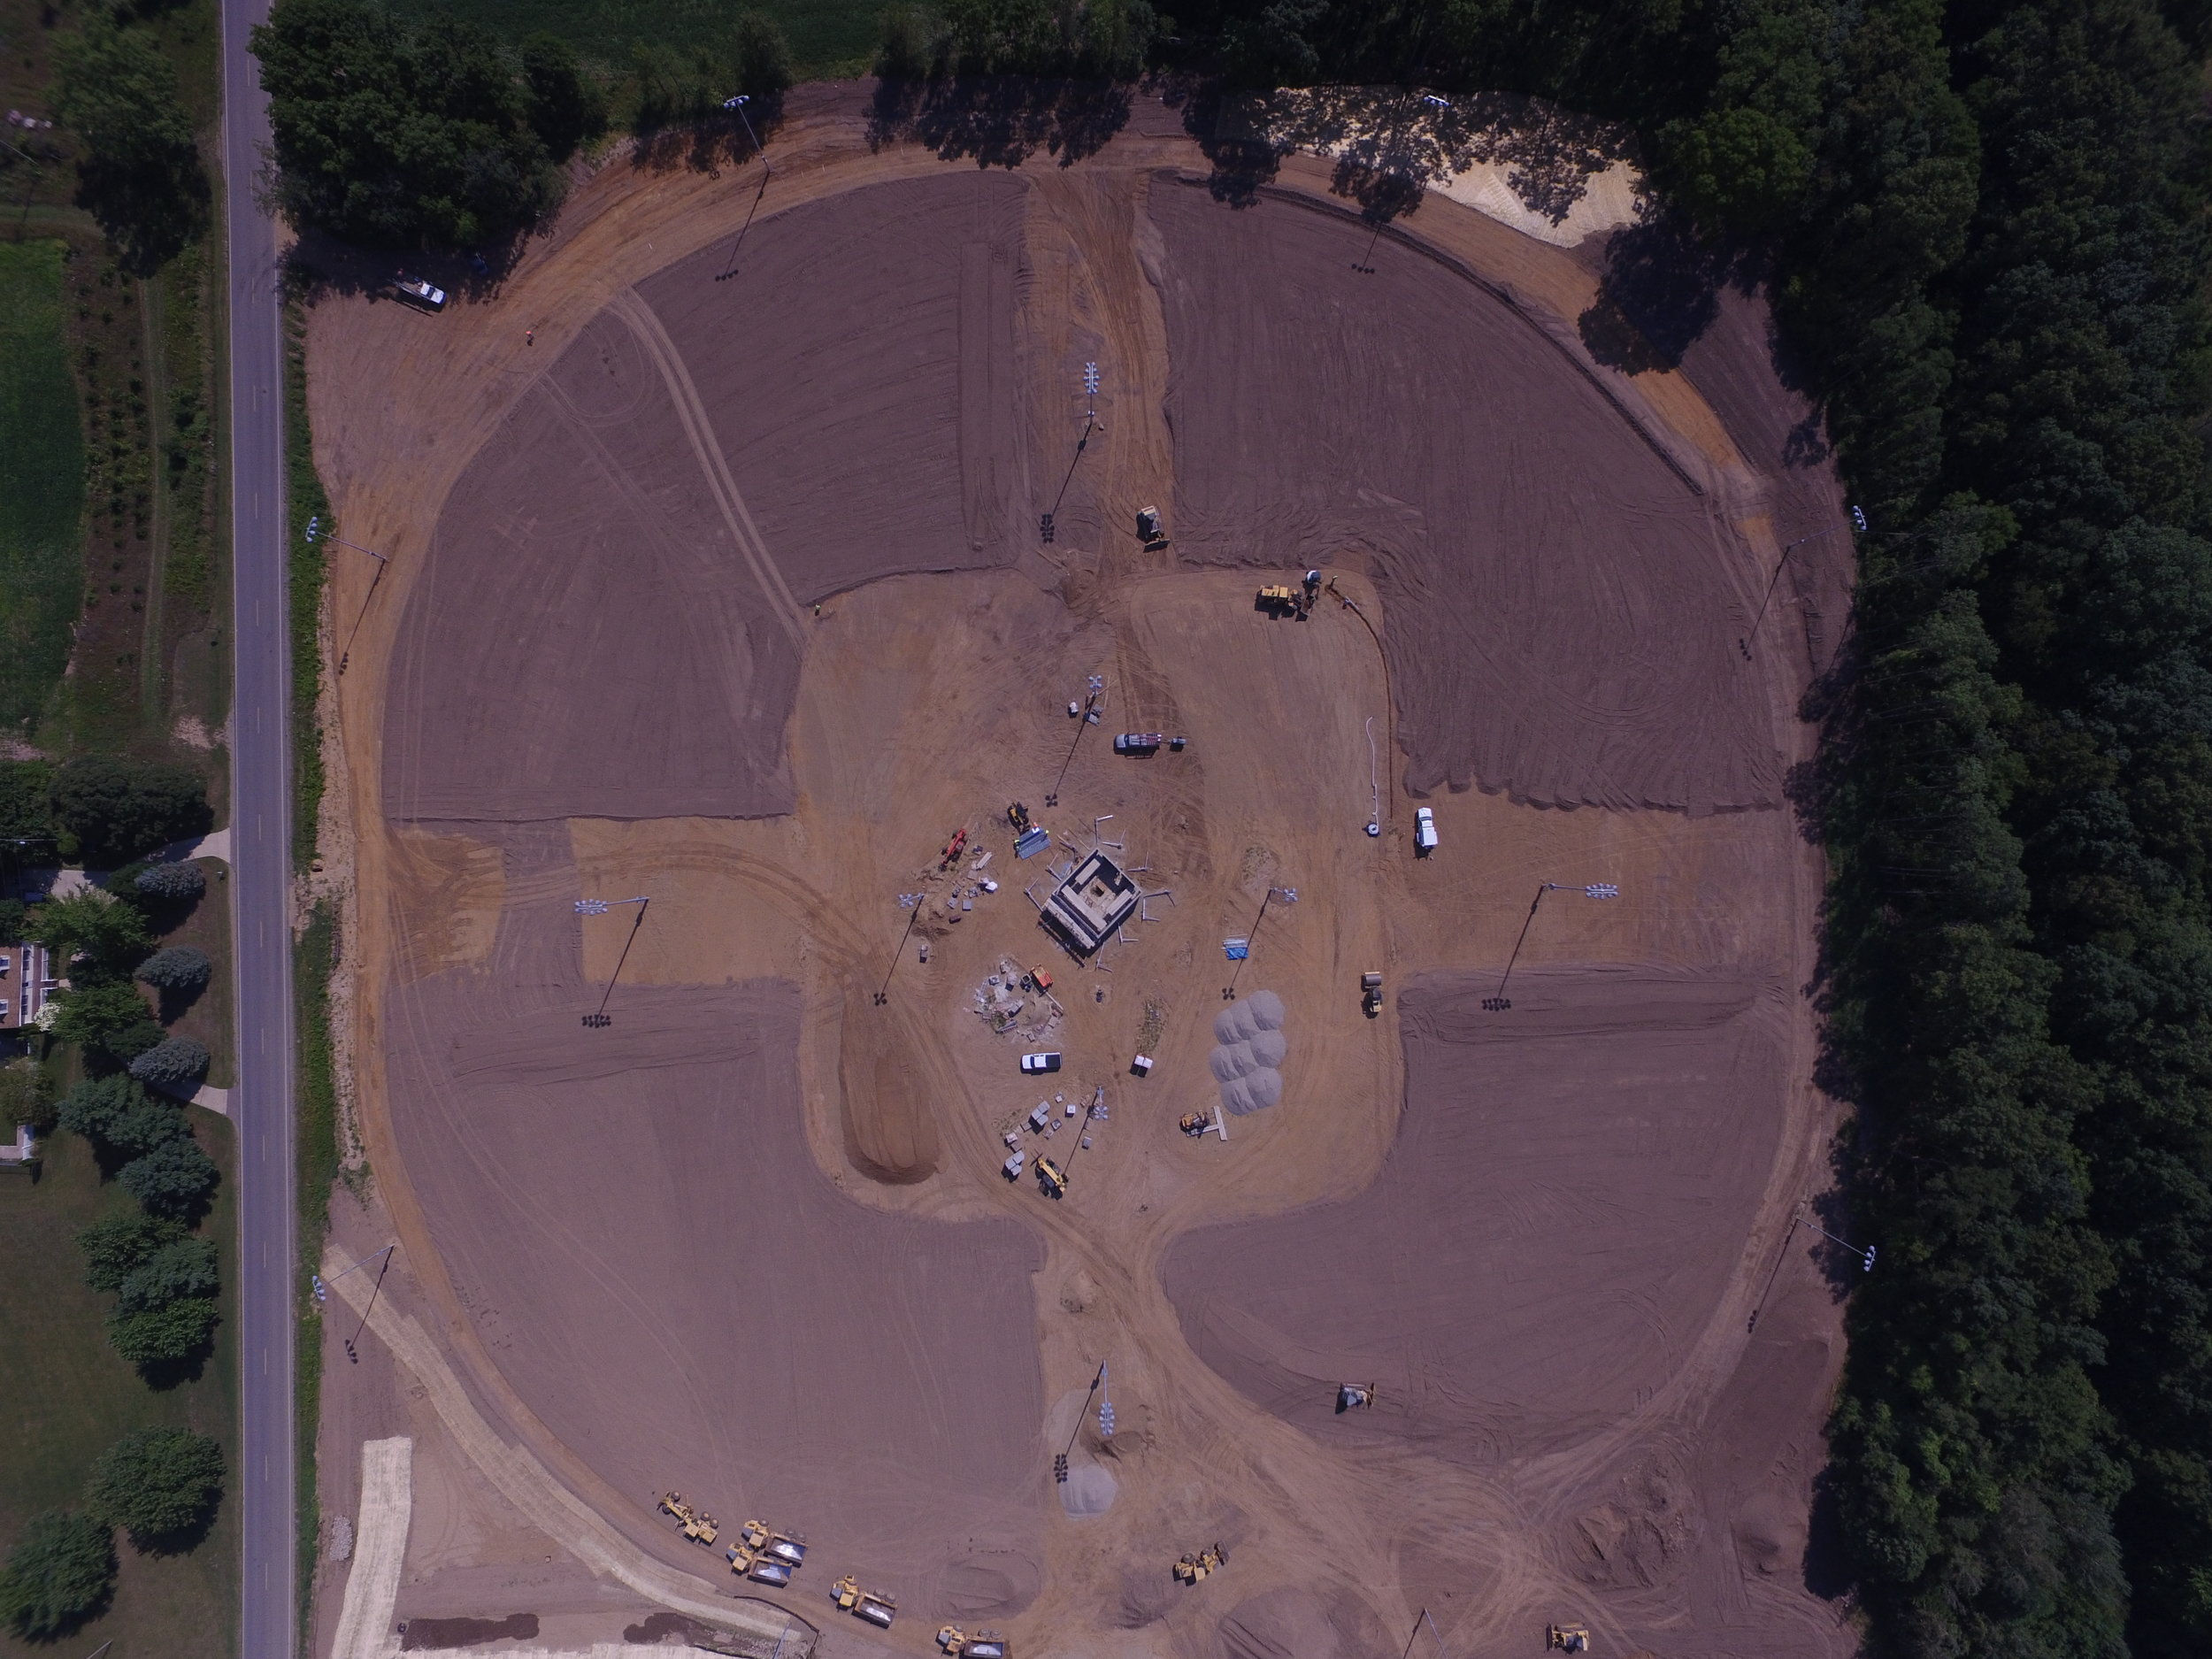 Spence Softball Complex - Drone Images